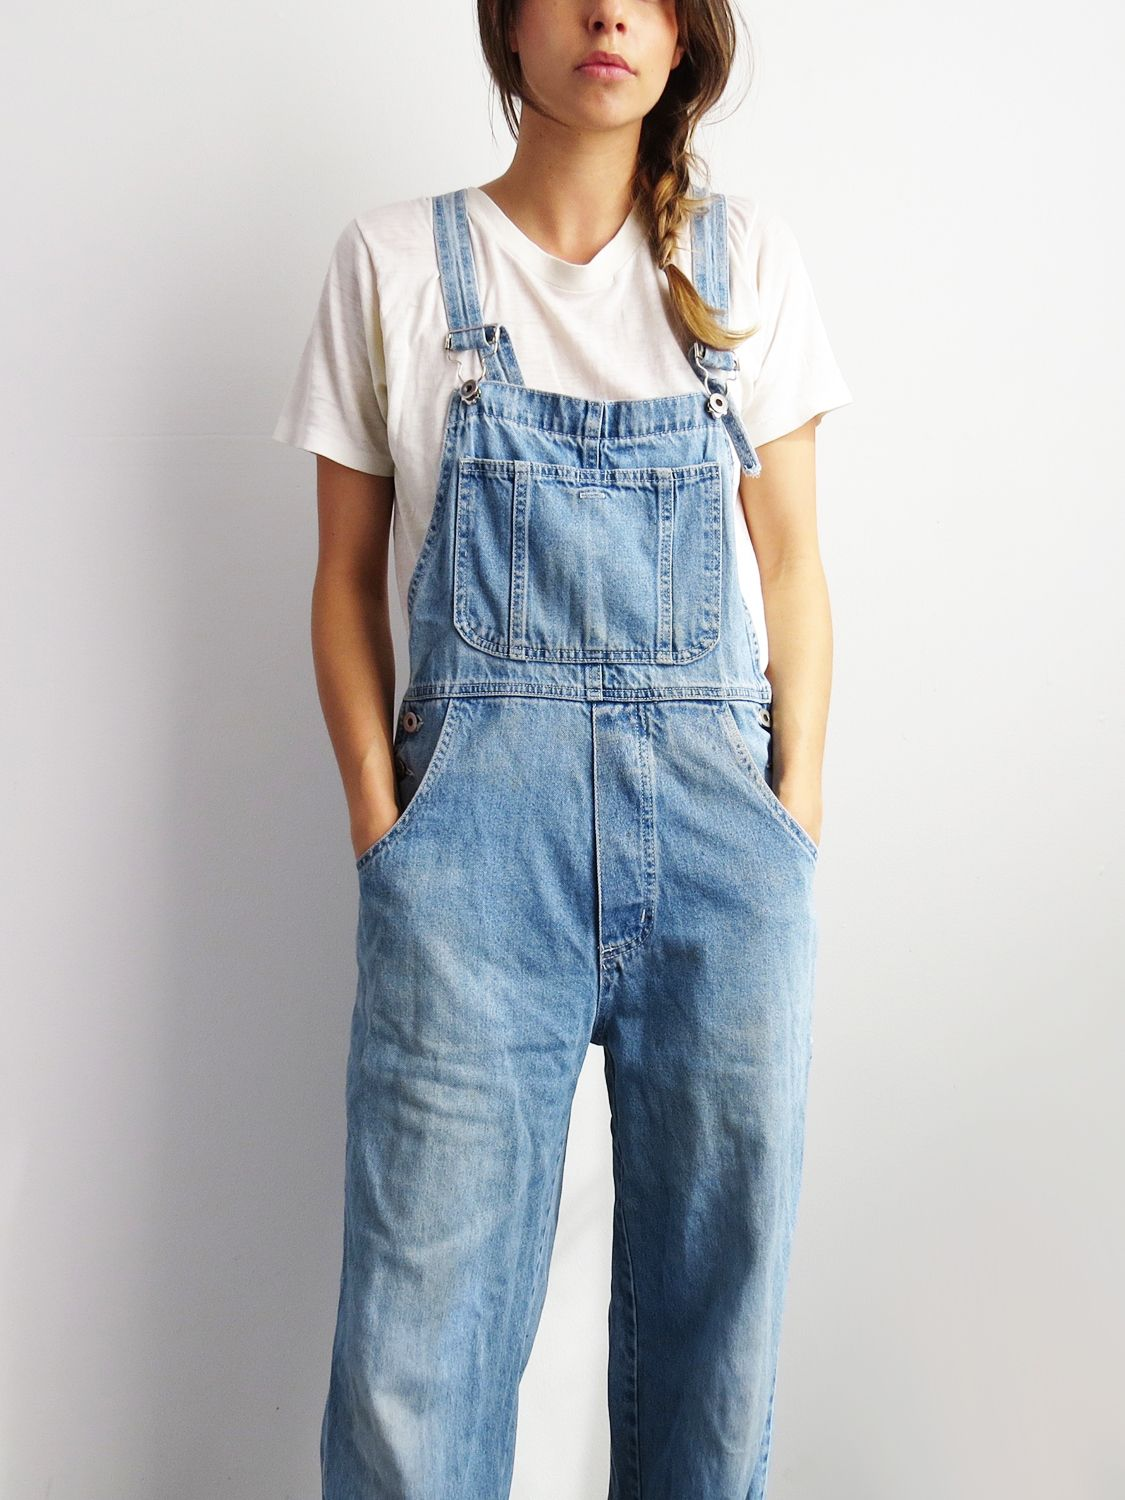 Distressed Denim Overalls // Vintage 1990's Overalls ...